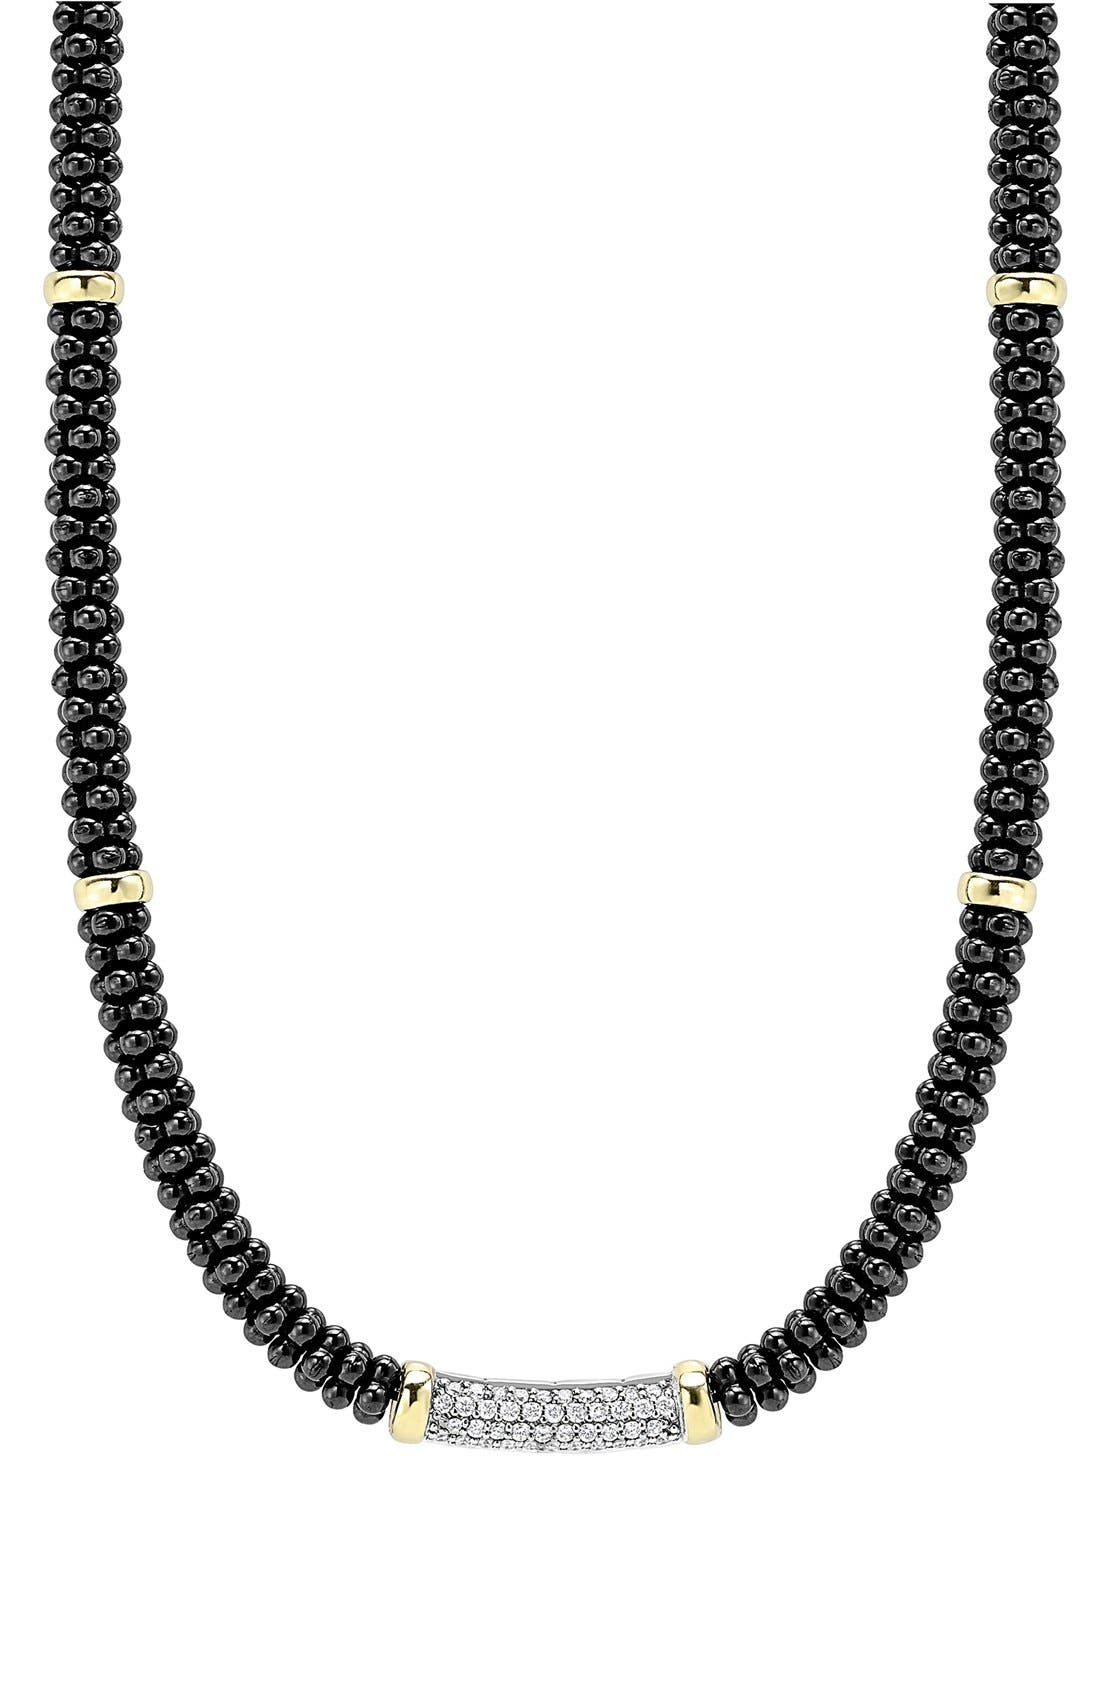 LAGOS 'Black Caviar' 5mm Beaded Diamond Bar Necklace